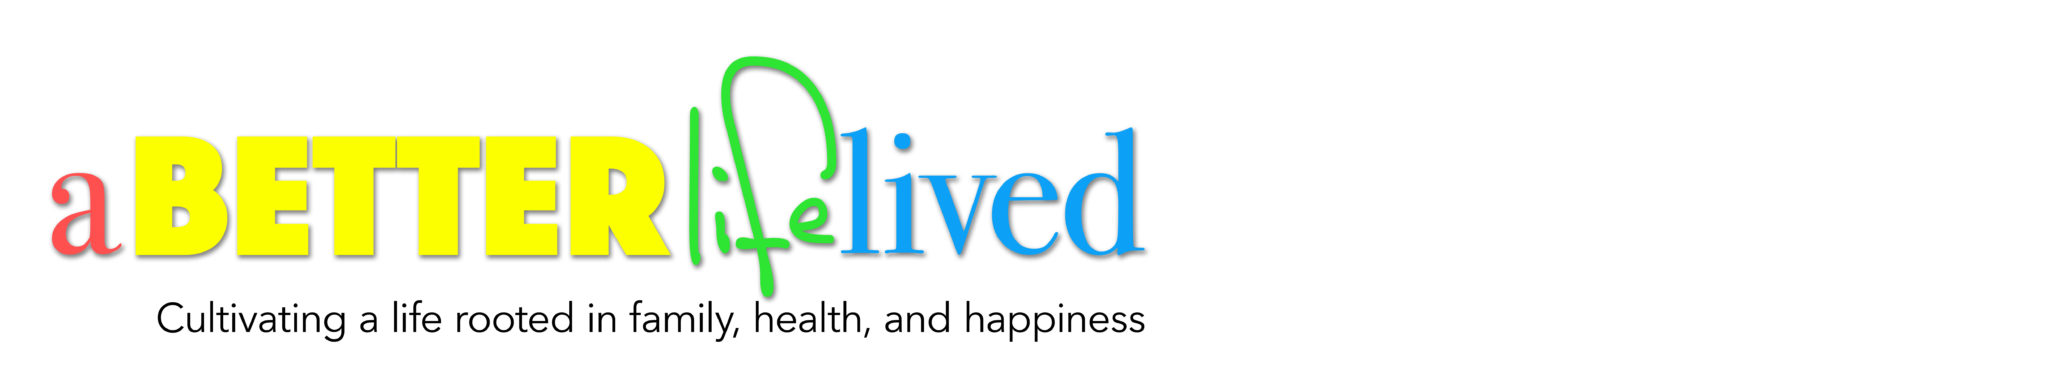 A Better Life Lived-Cultivating a life rooted in family, health, and happiness